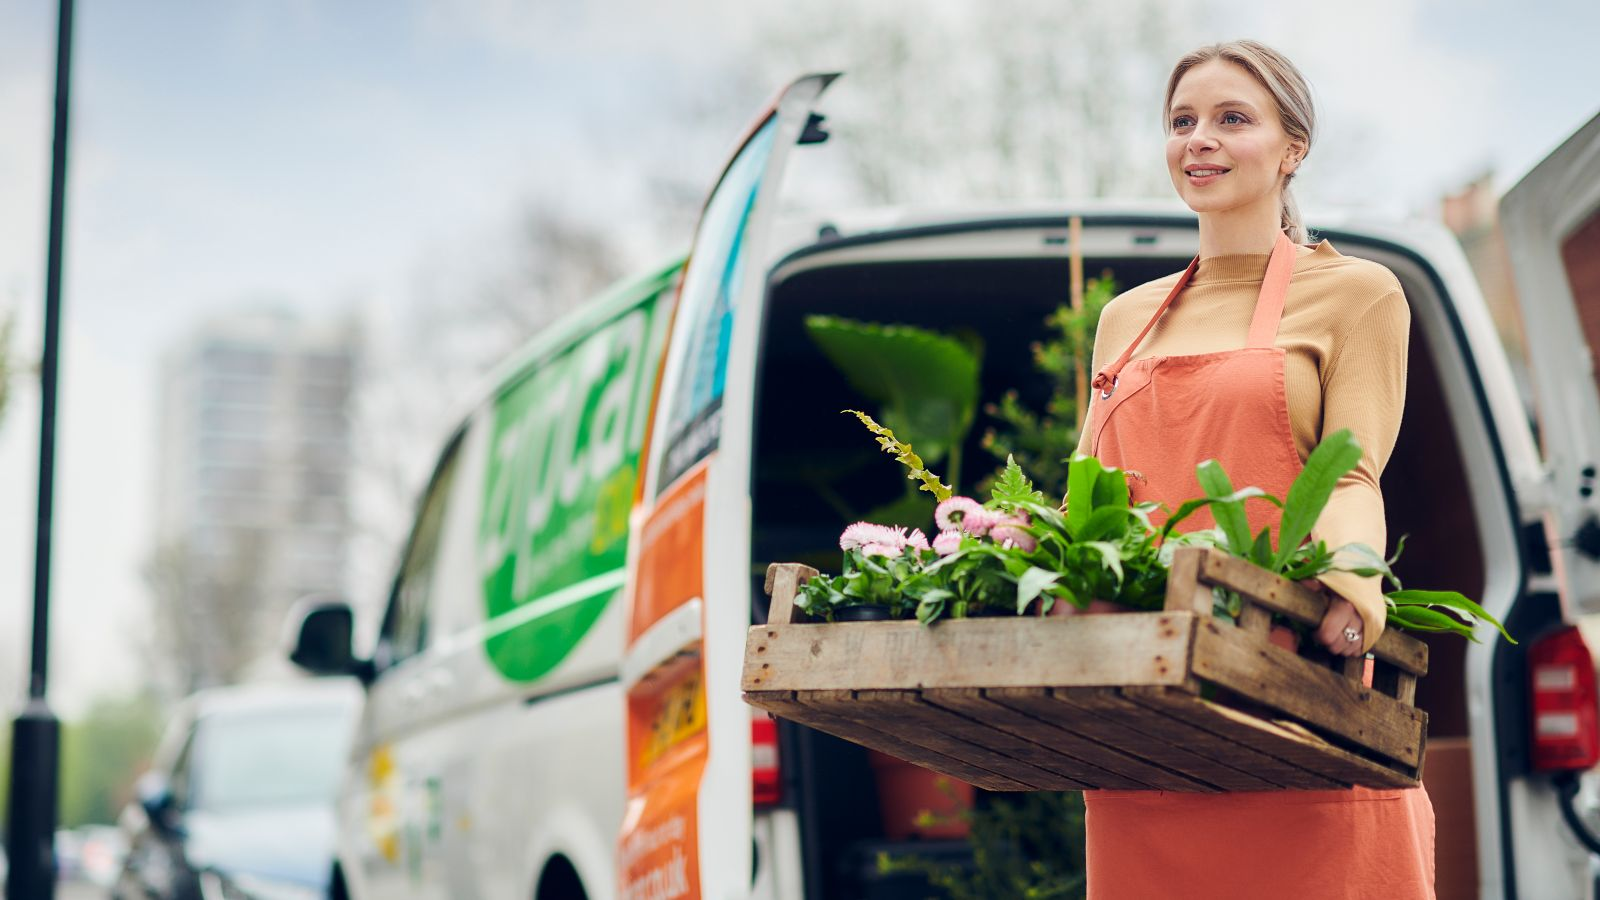 woman delivering plants using zipcar